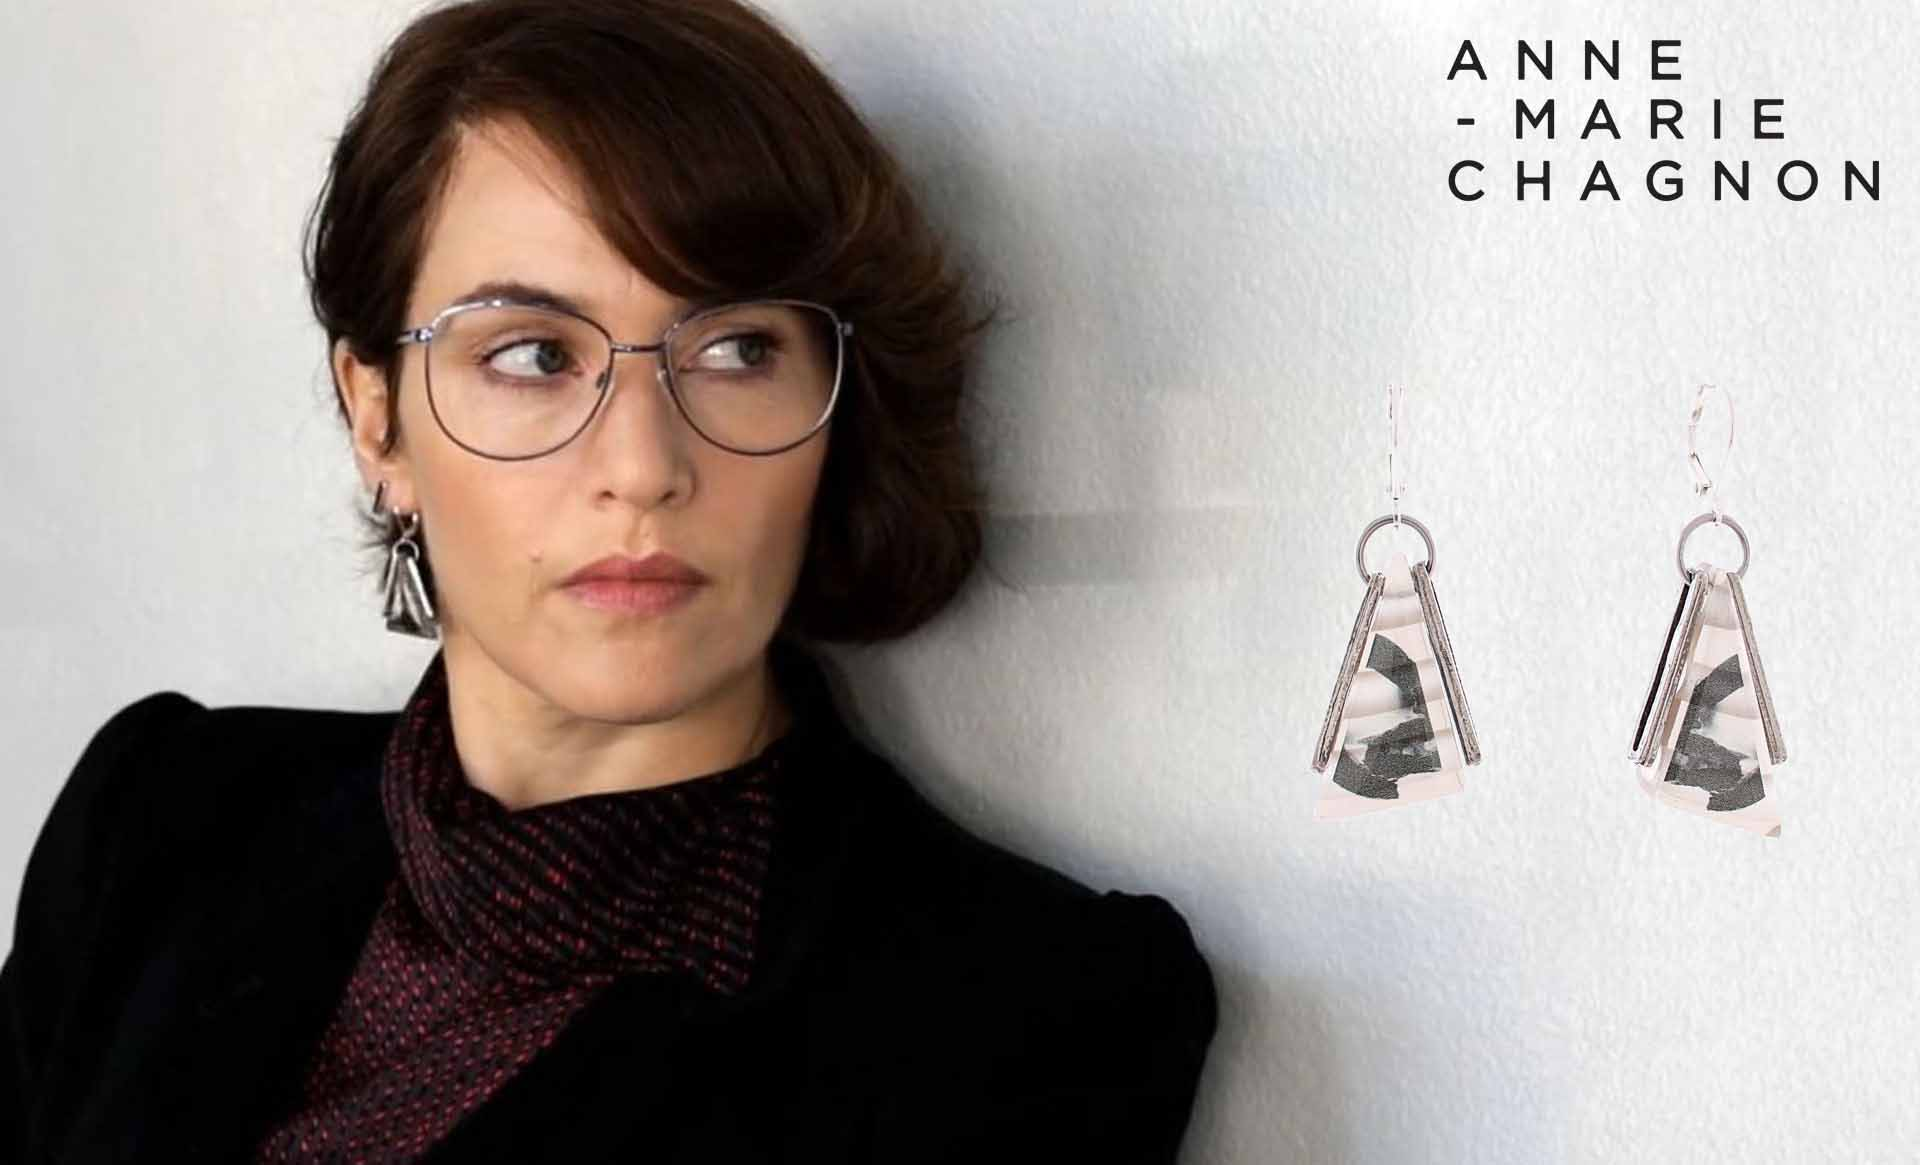 Kate Winslet wearing an Anne-Marie Chagnon in Steve Jobs - The Movie